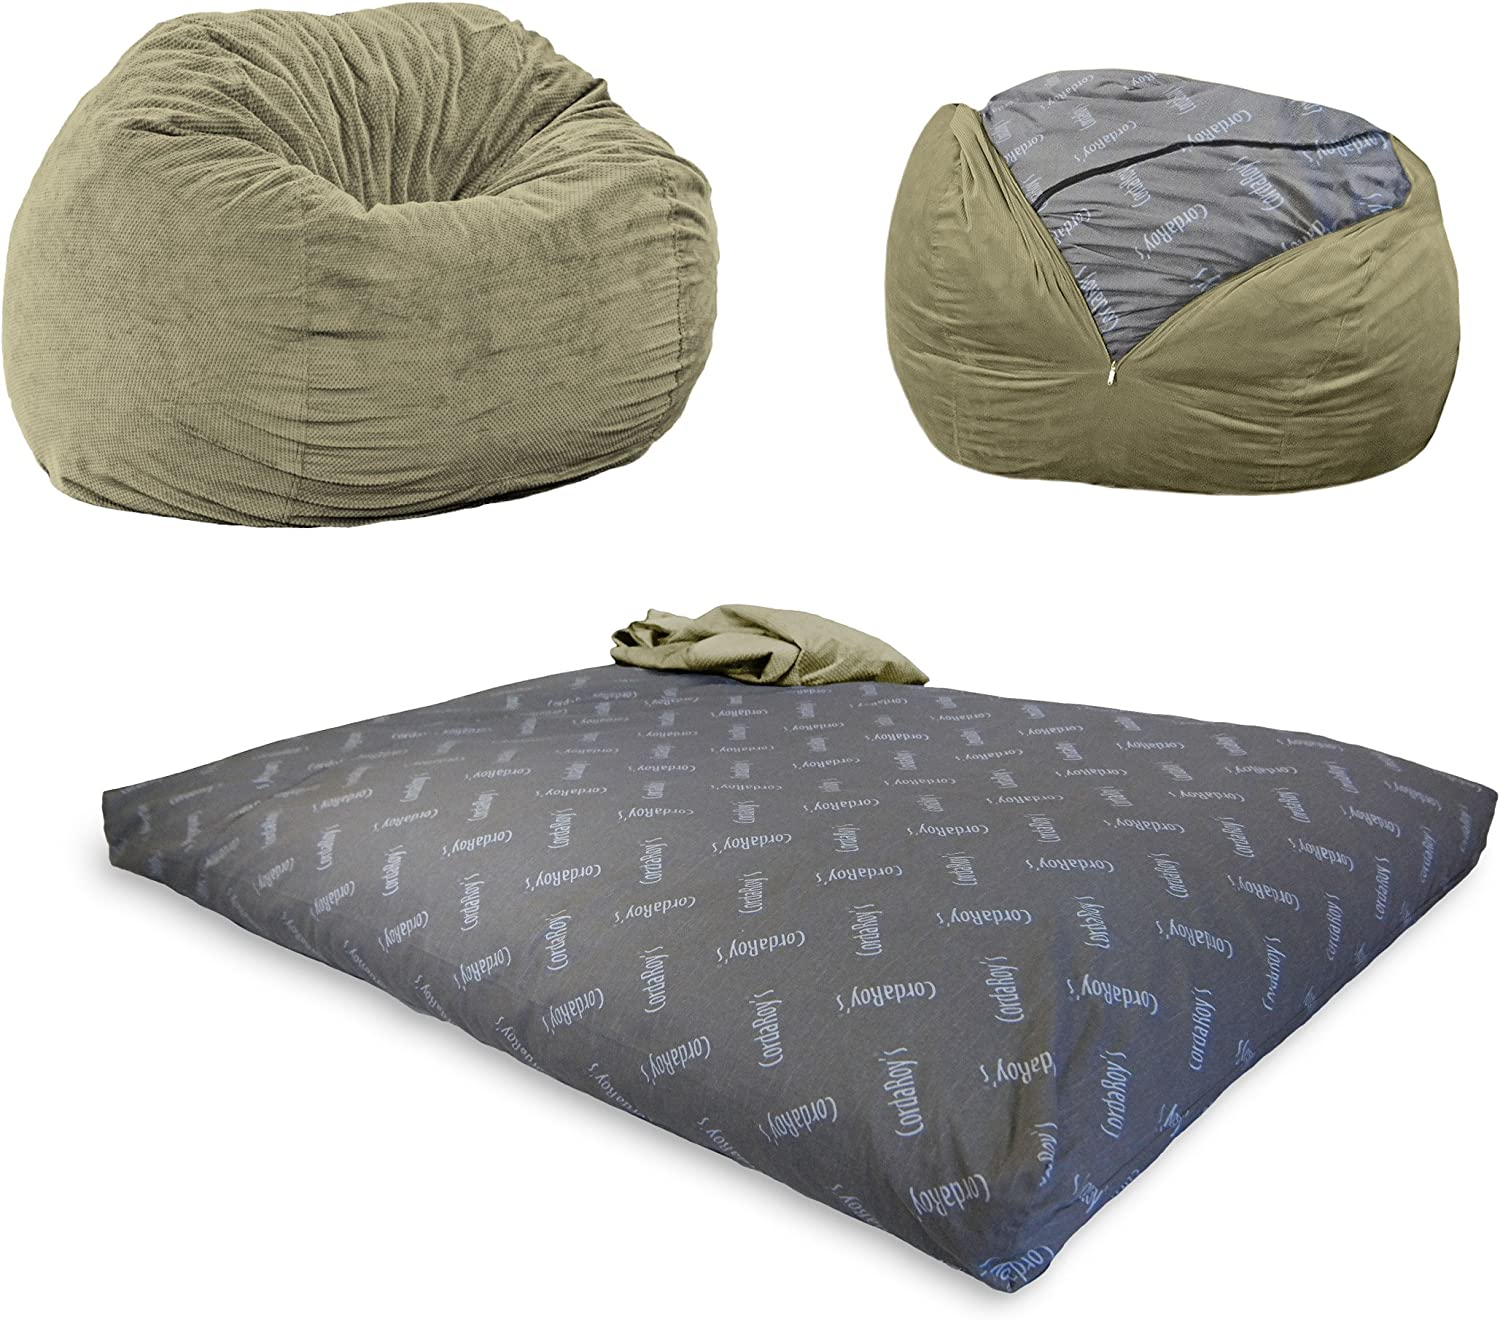 Corduroy Convertible Chair Folds from Bean Bag to Bed As Seen on Shark Tank CordaRoys Bean Bag Chair Full Size Purple